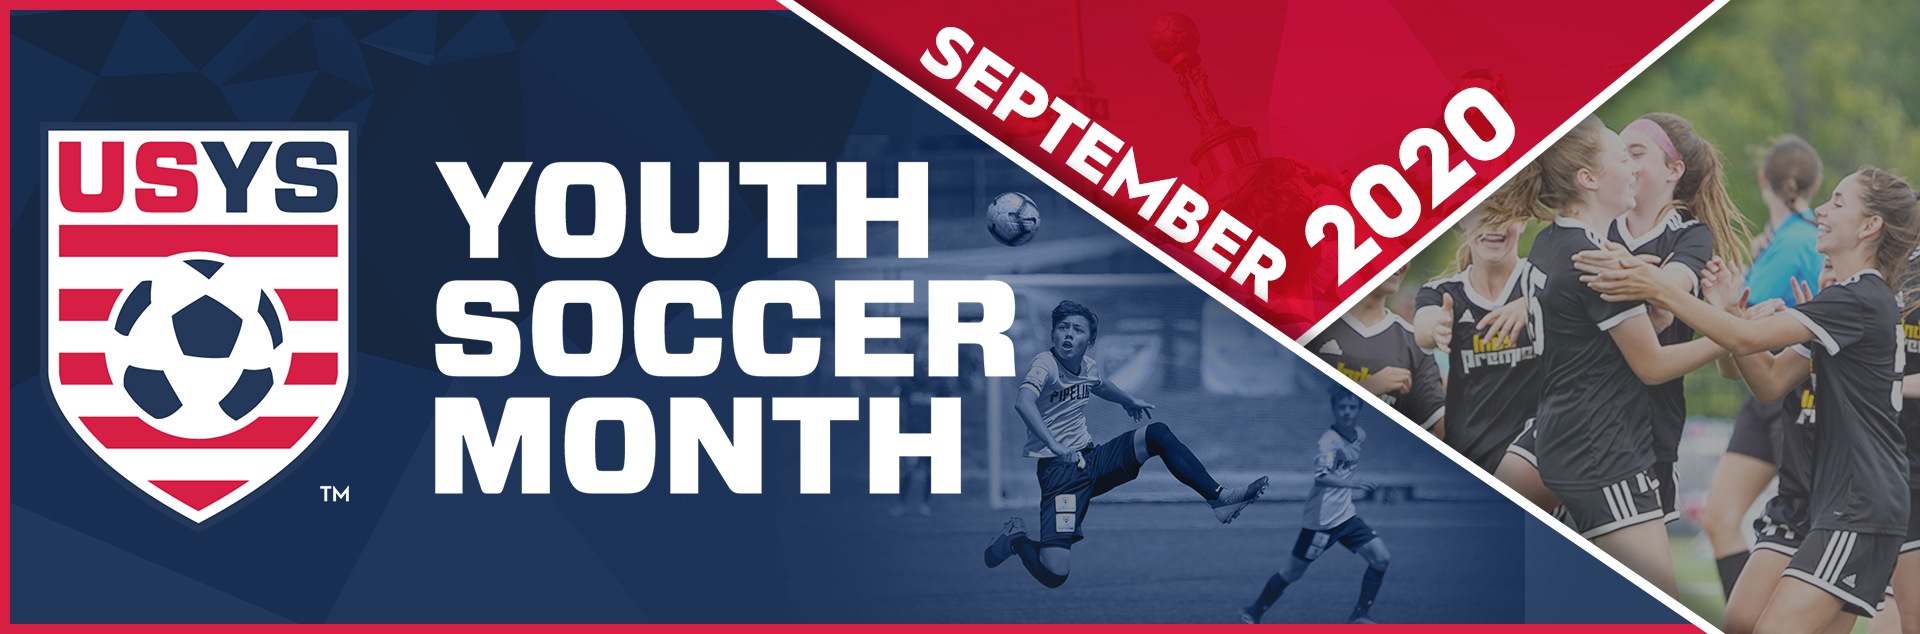 YouthSoccerMonth_Generic_WebHeader_v1